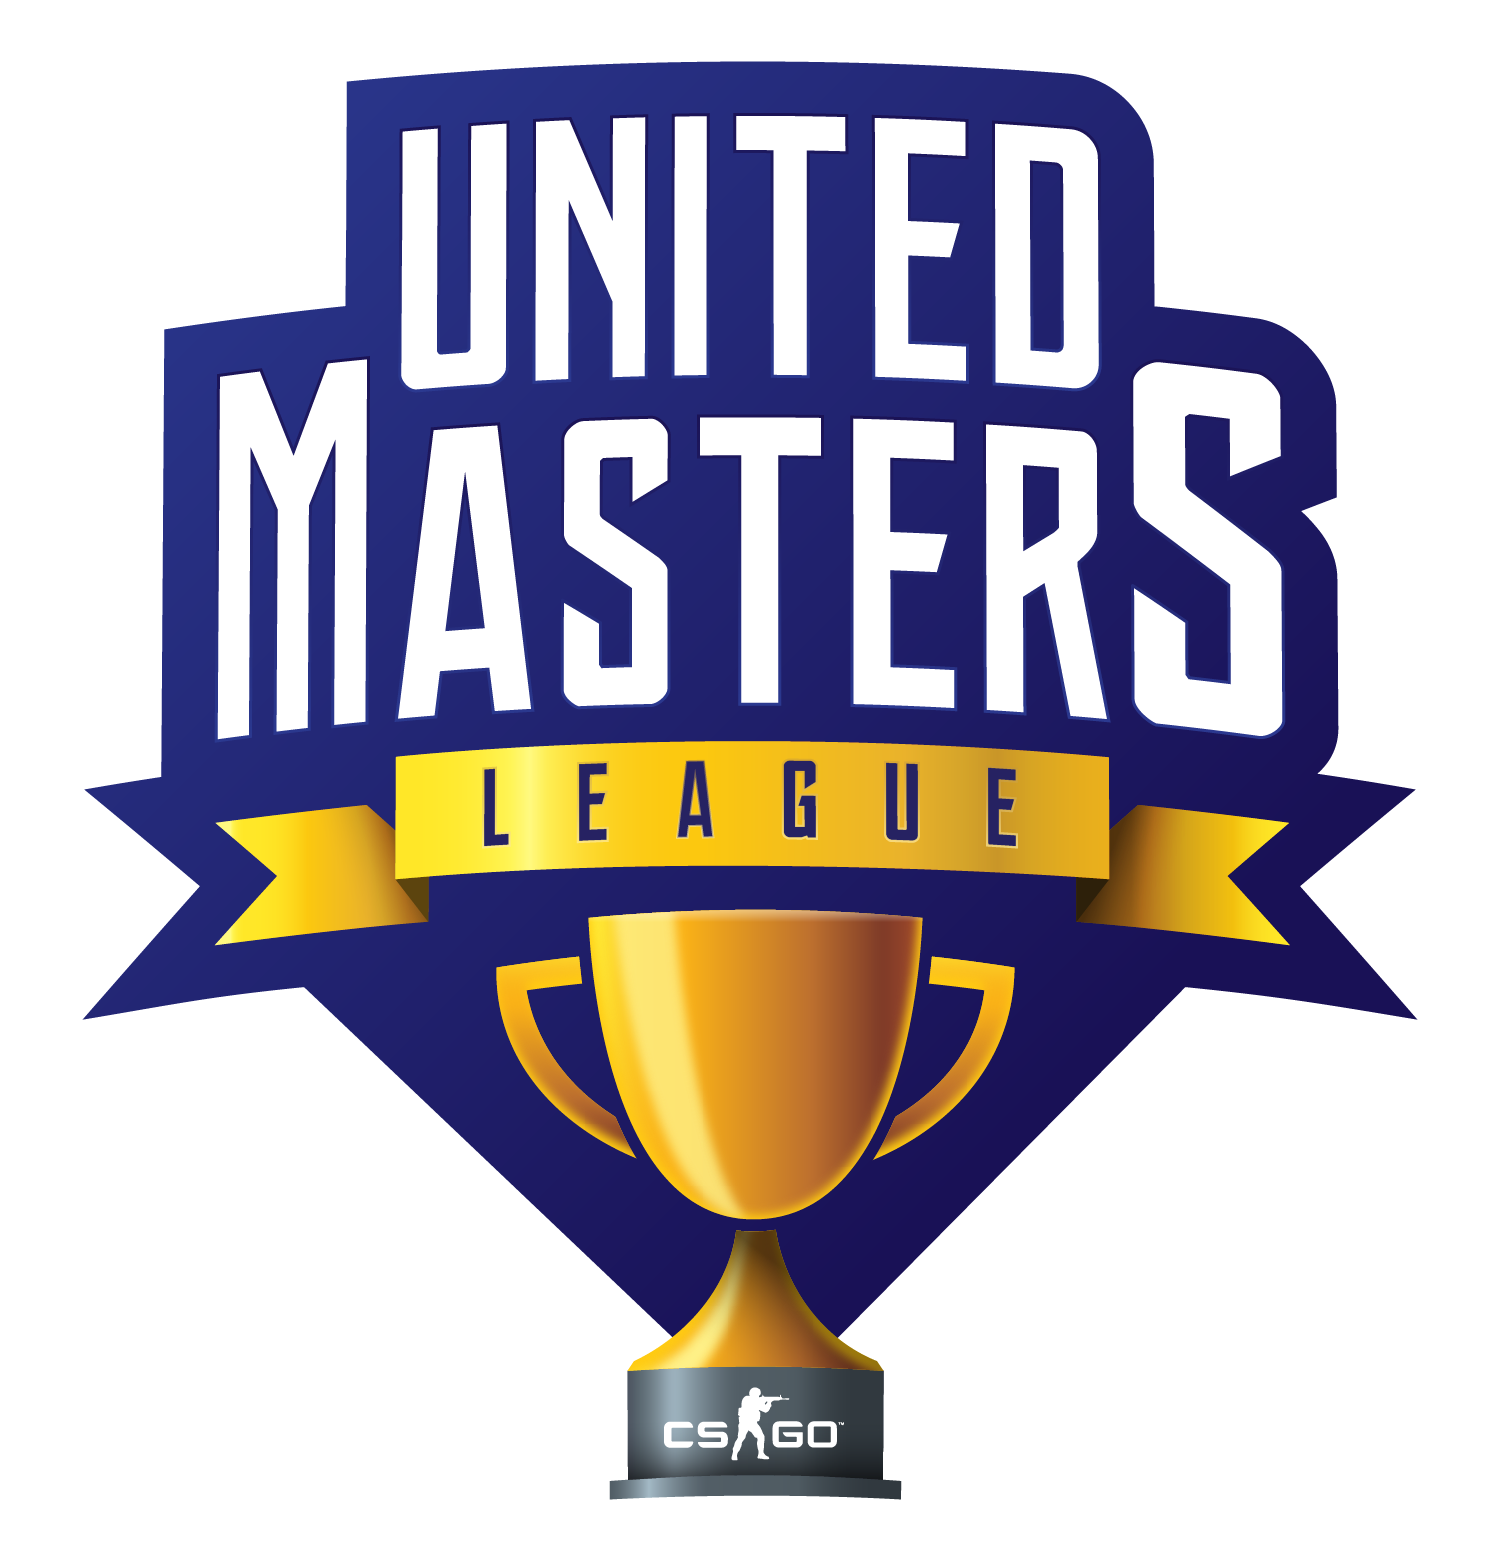 United Masters League Season 2 Week 2